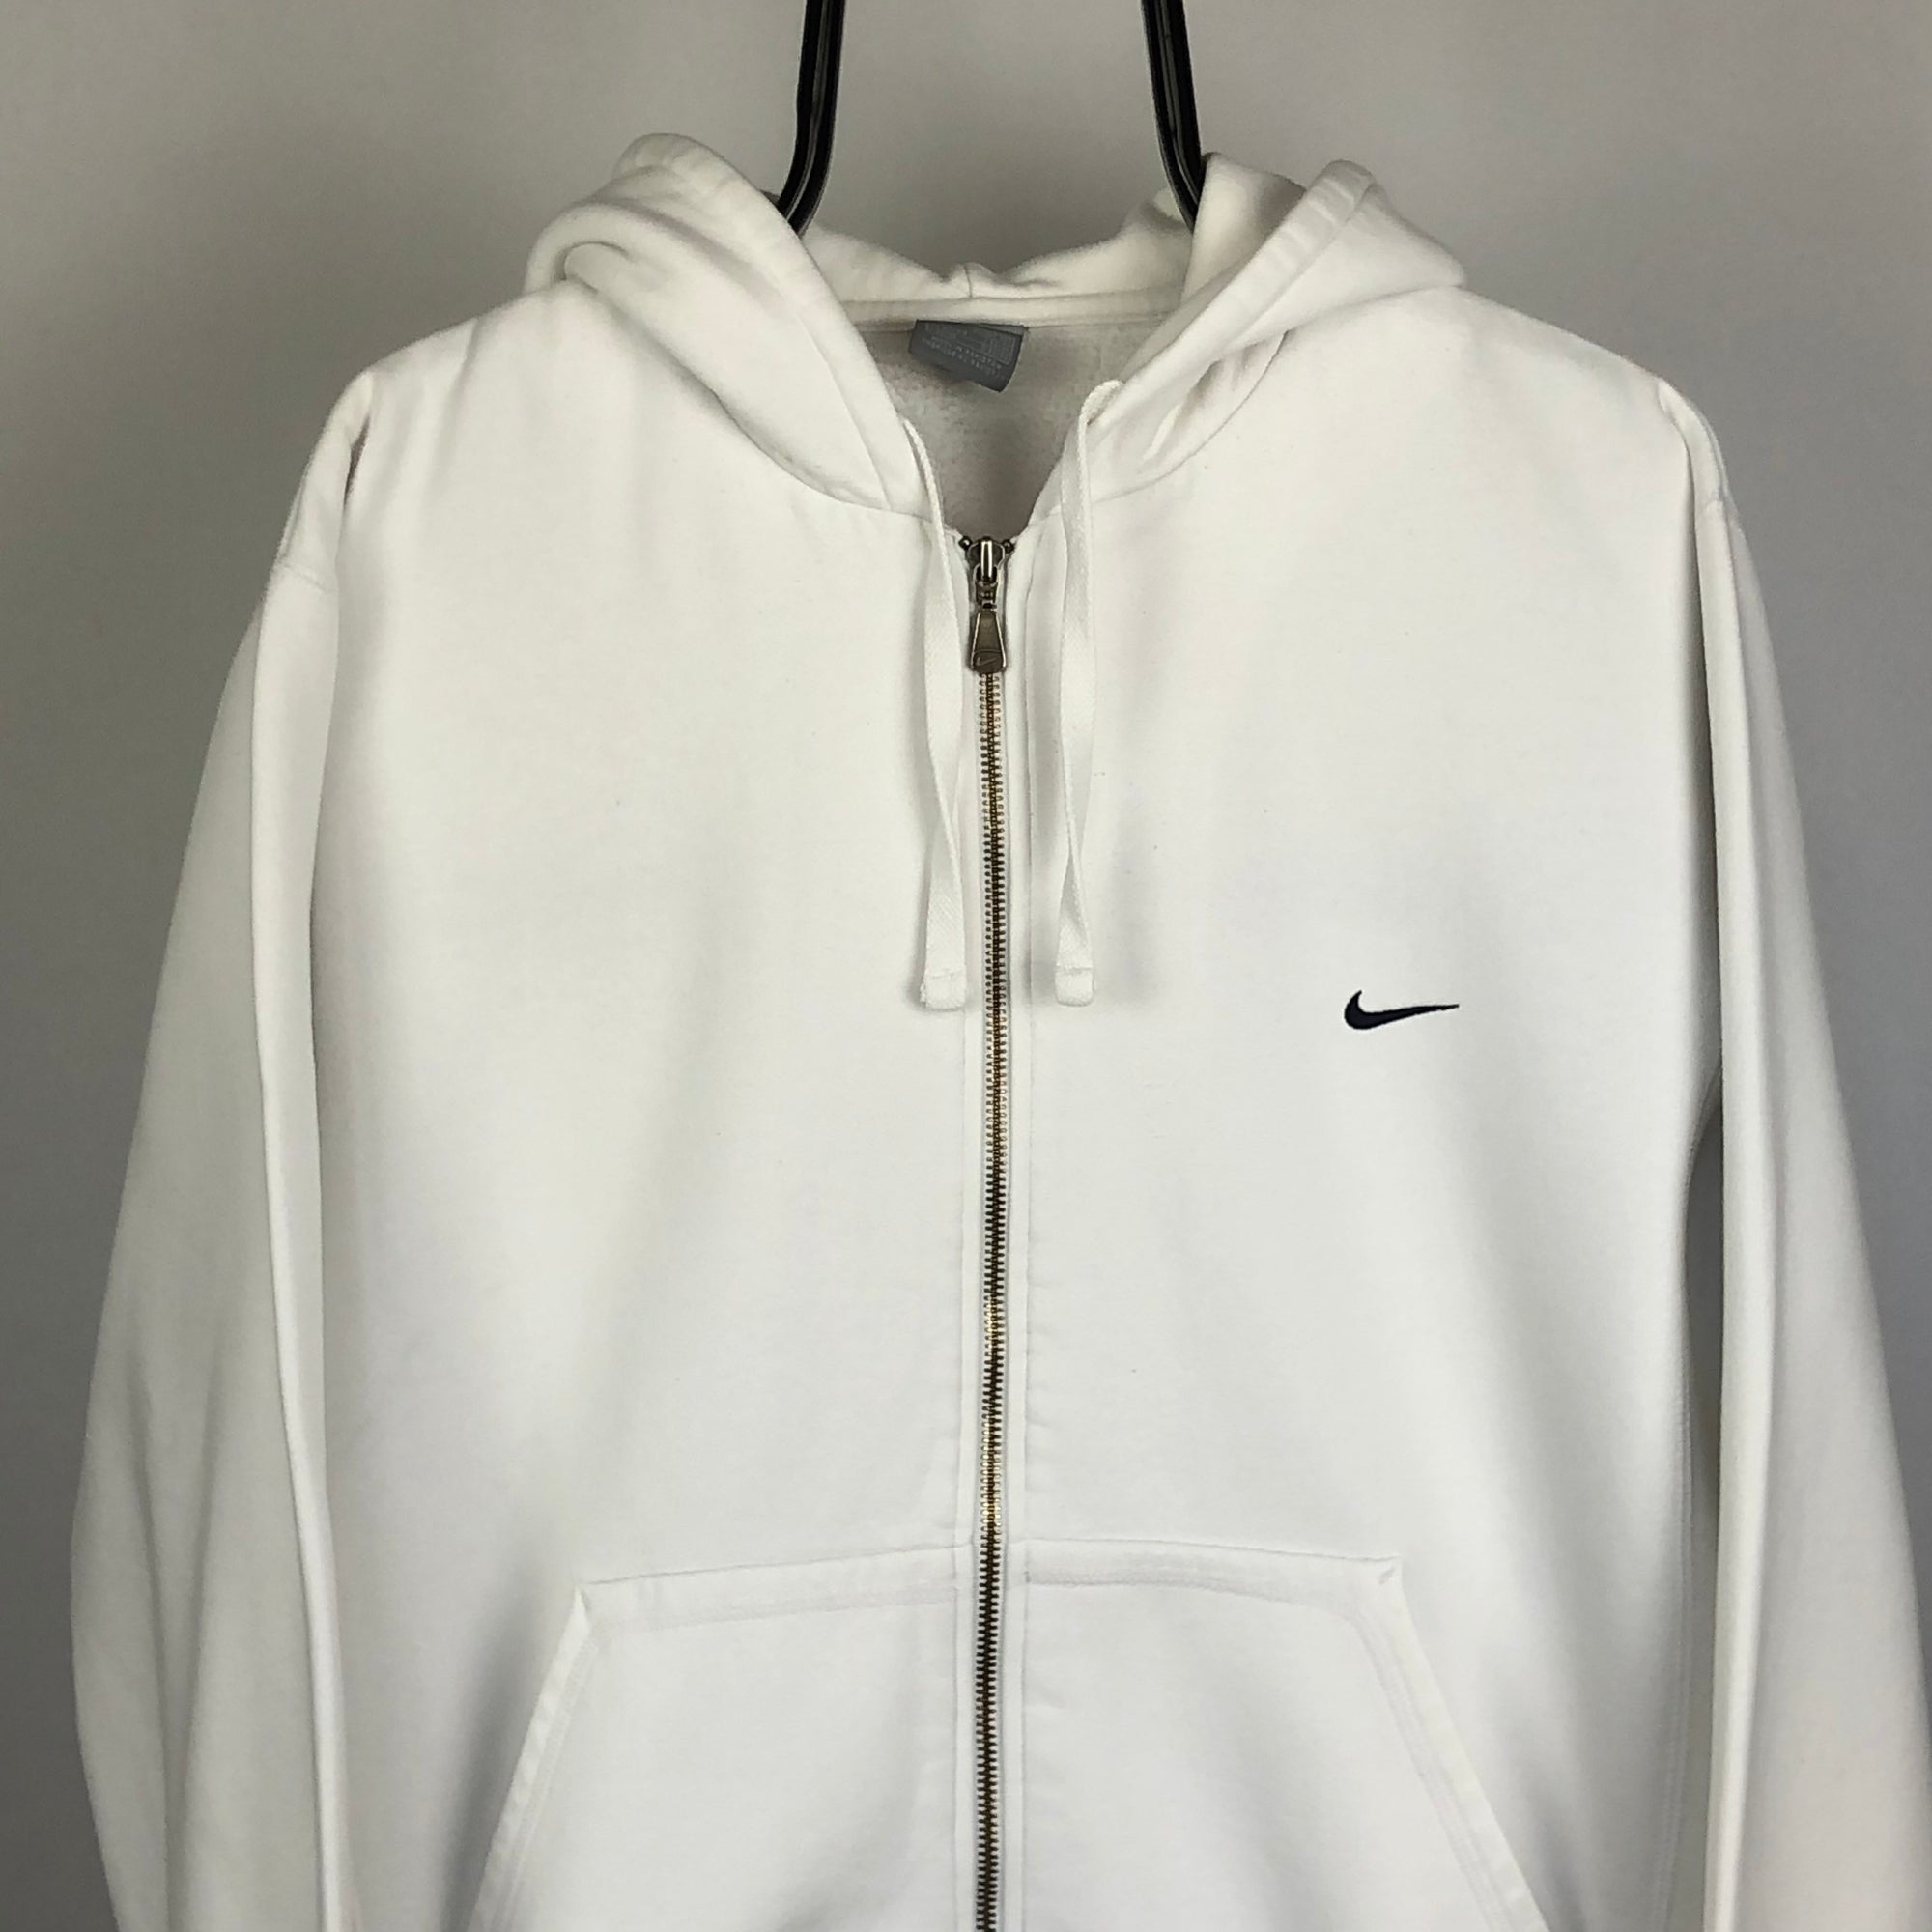 Nike Embroidered Small Swoosh Jacket in White - Men's Large/Women's XL